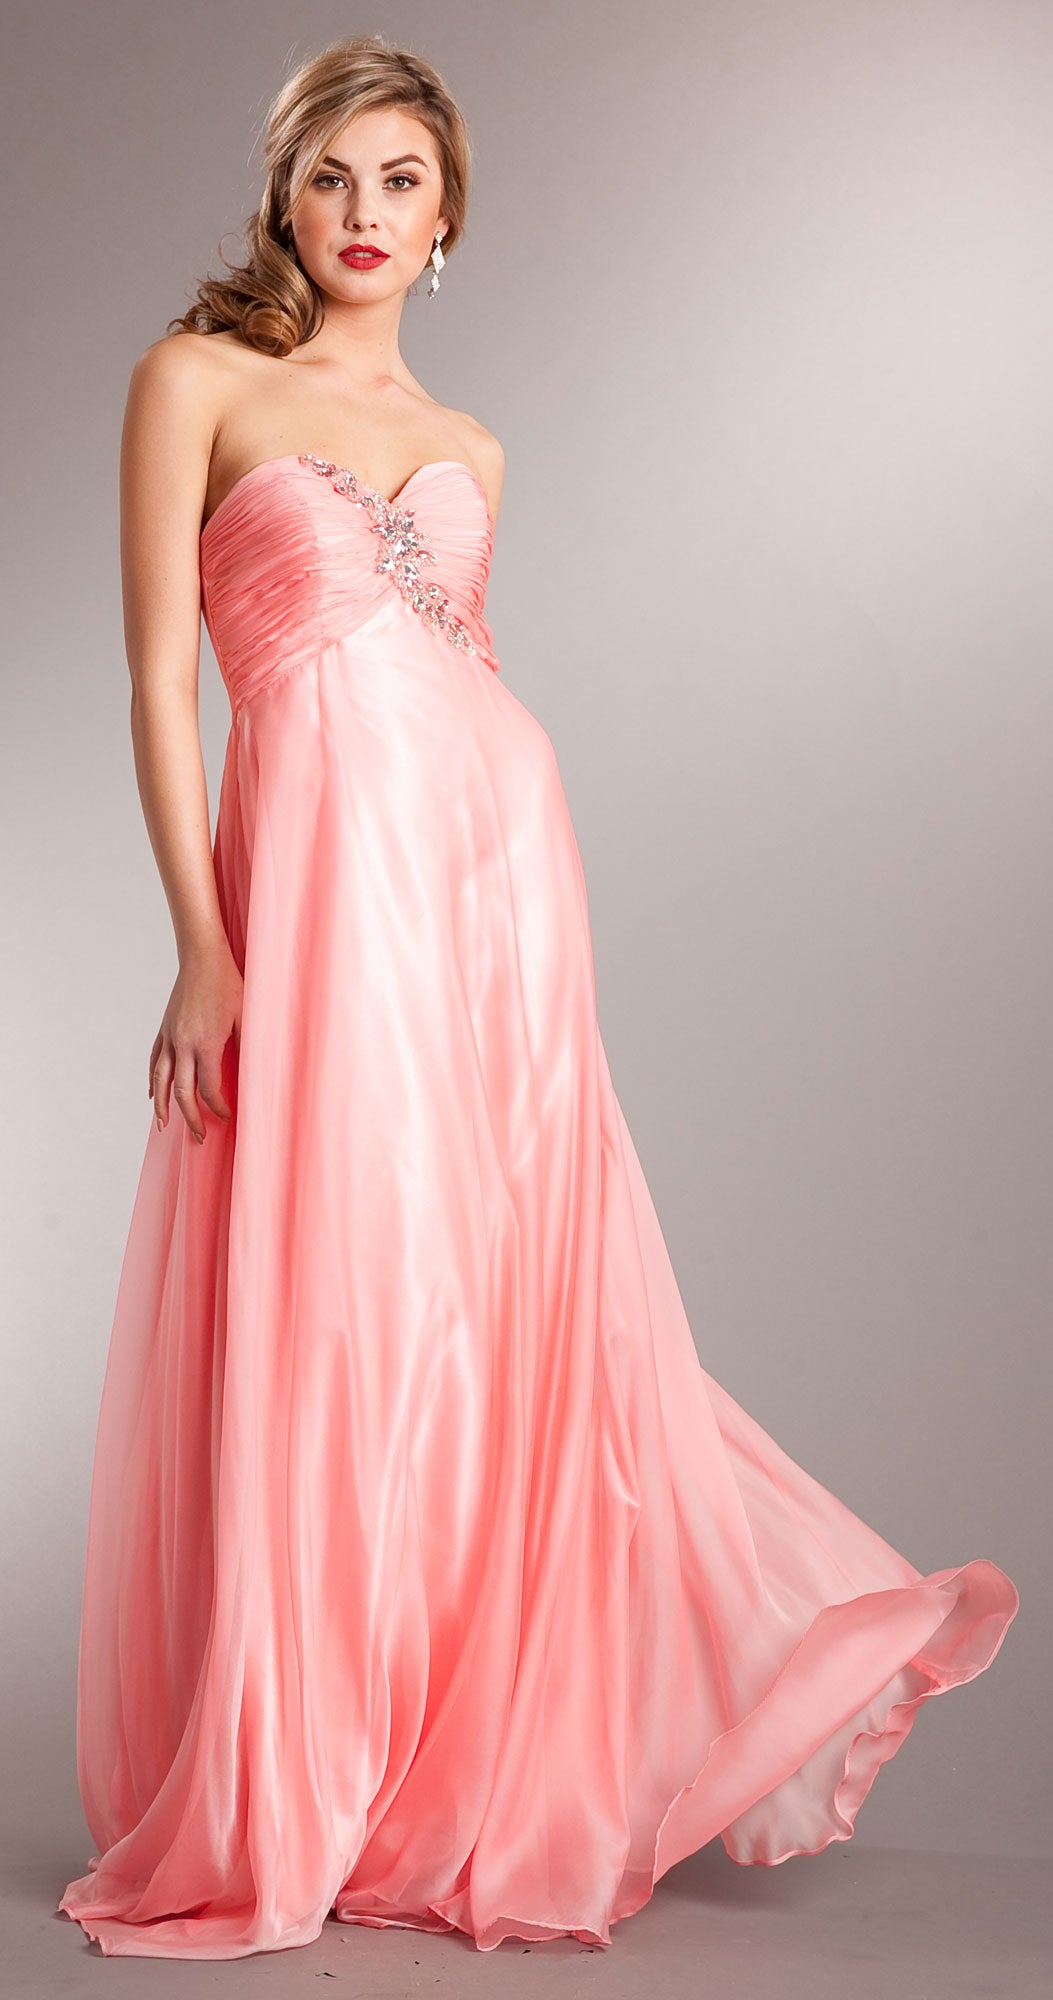 Main image of Strapless Shirred Long Formal Prom Dress With Rhinestones